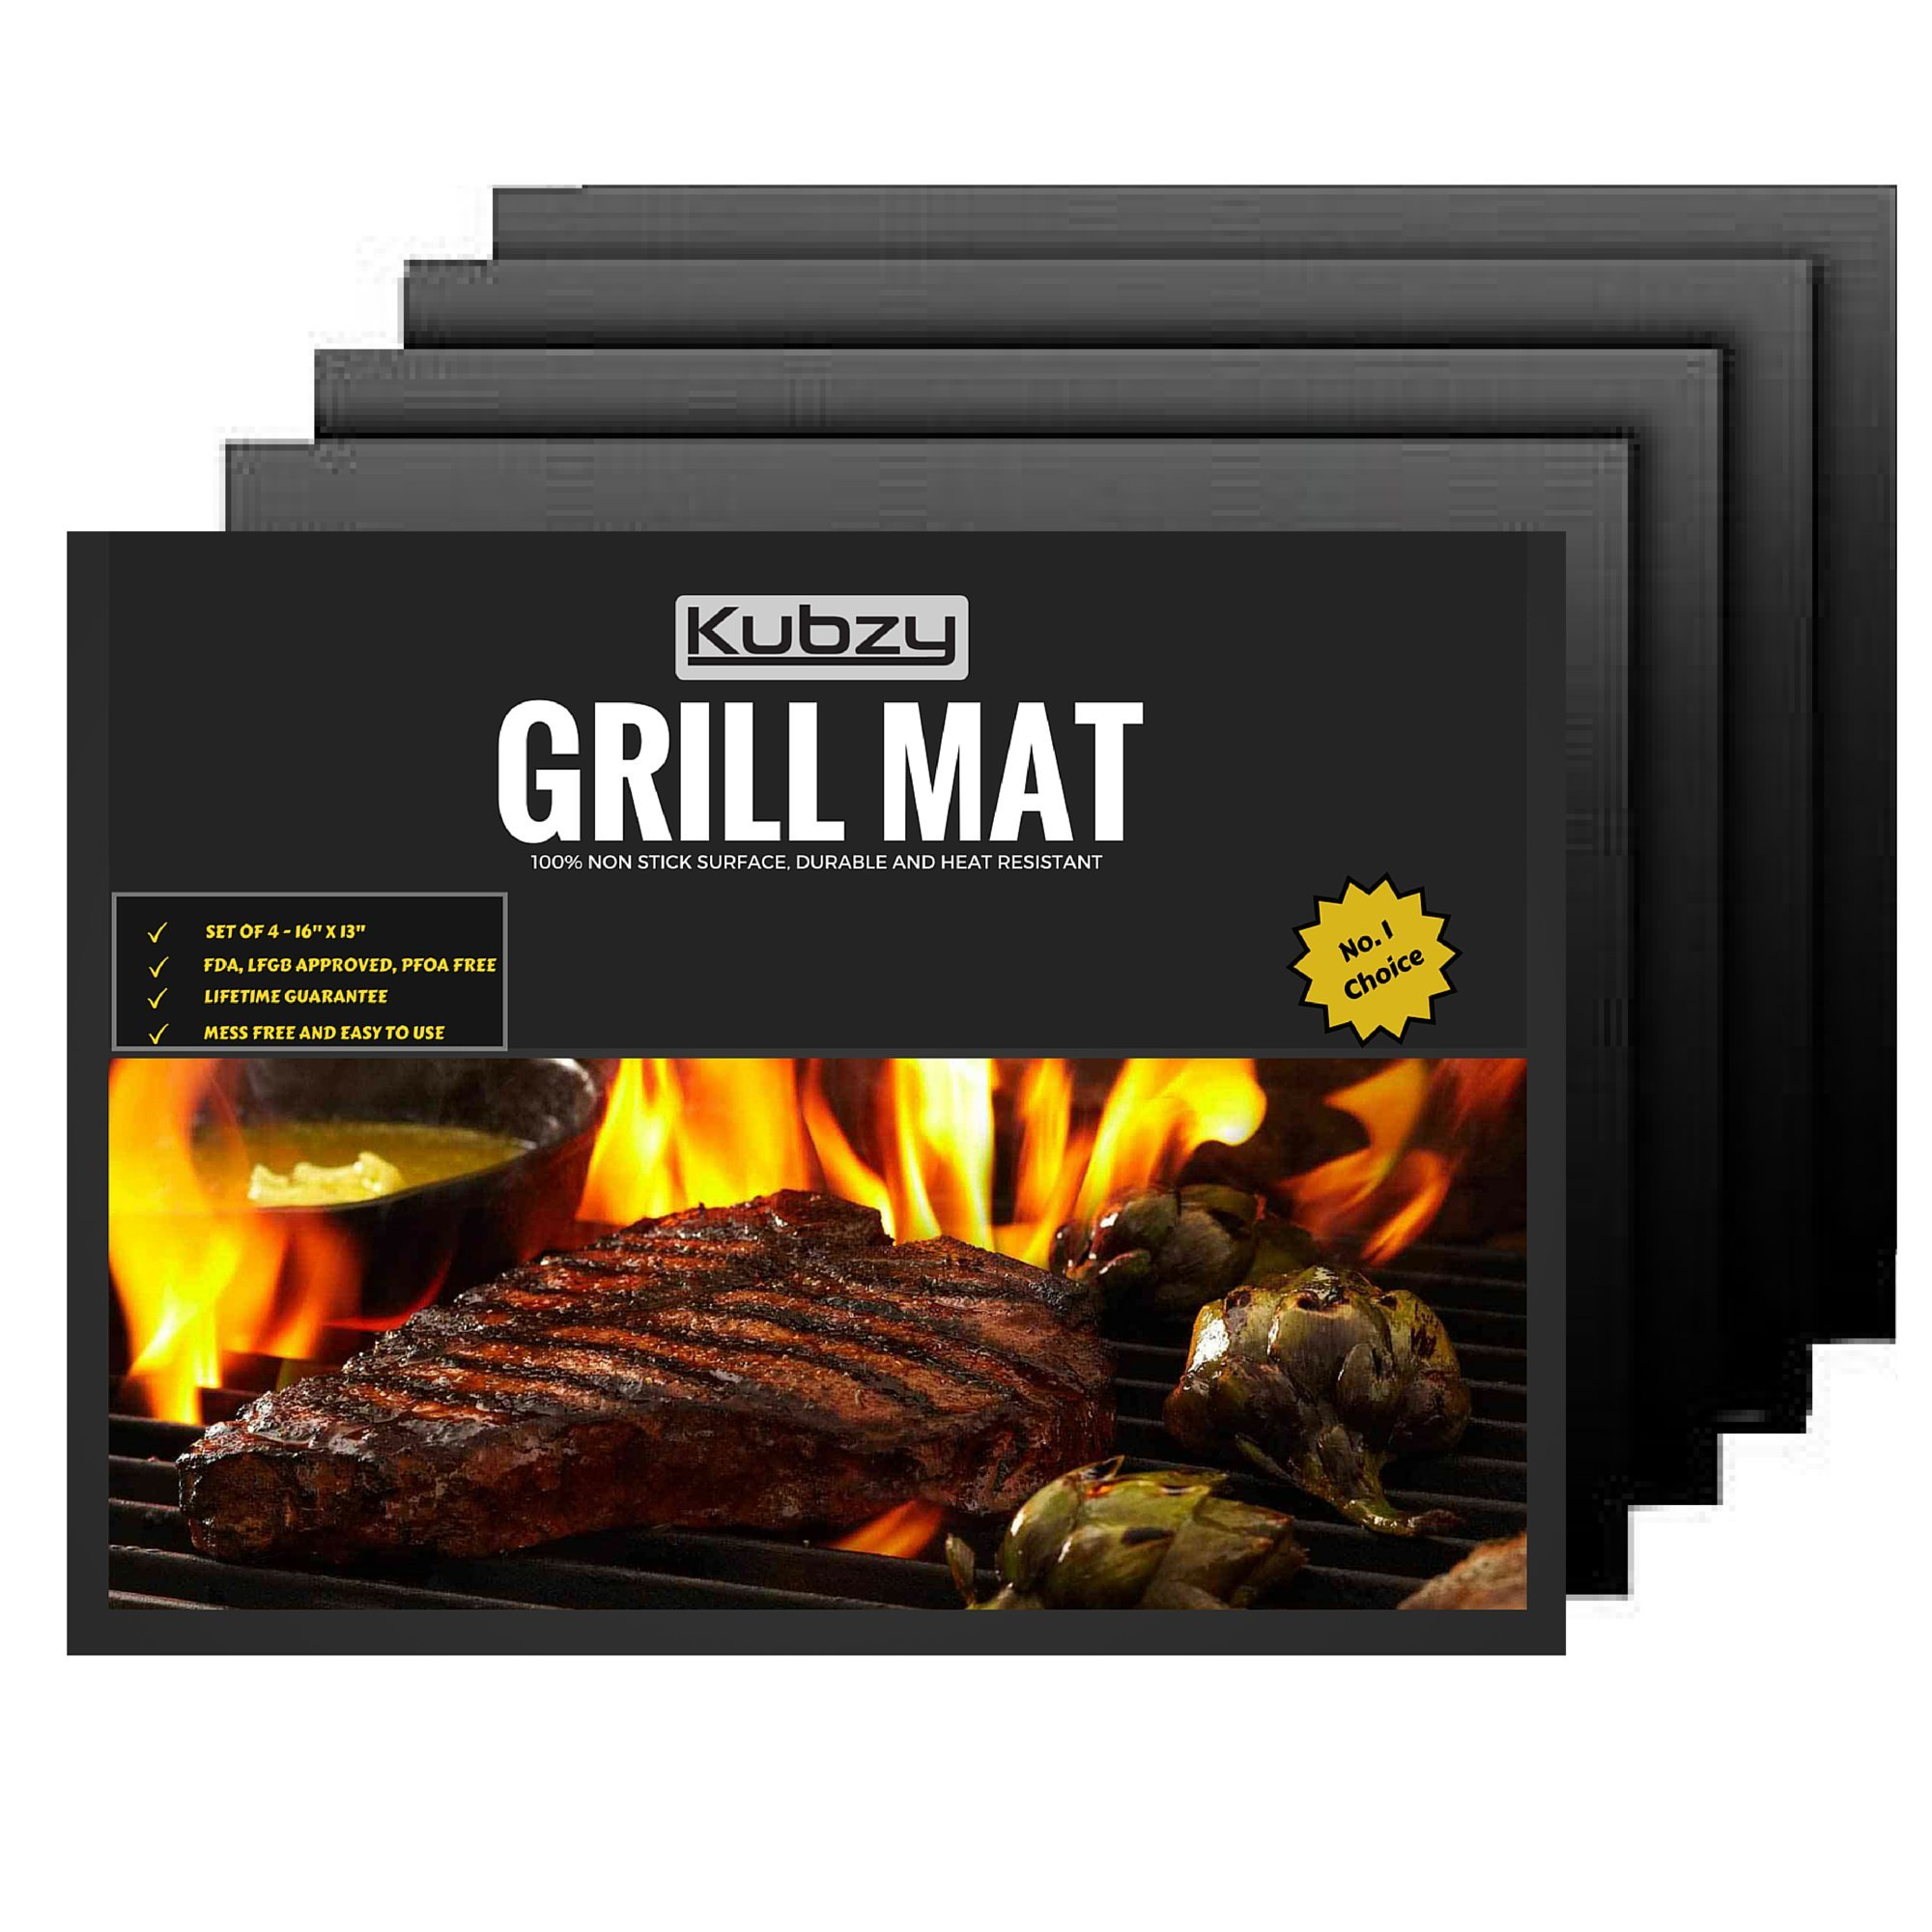 Kubzy BBQ Grill Mat Set of 4 16'' x 13'' Non-Stick, Durable, Heat Resistant - Perfect for Barbecue, Grilling, Oven, Cooking, and Baking by Kubzy Grill Mat (Image #1)